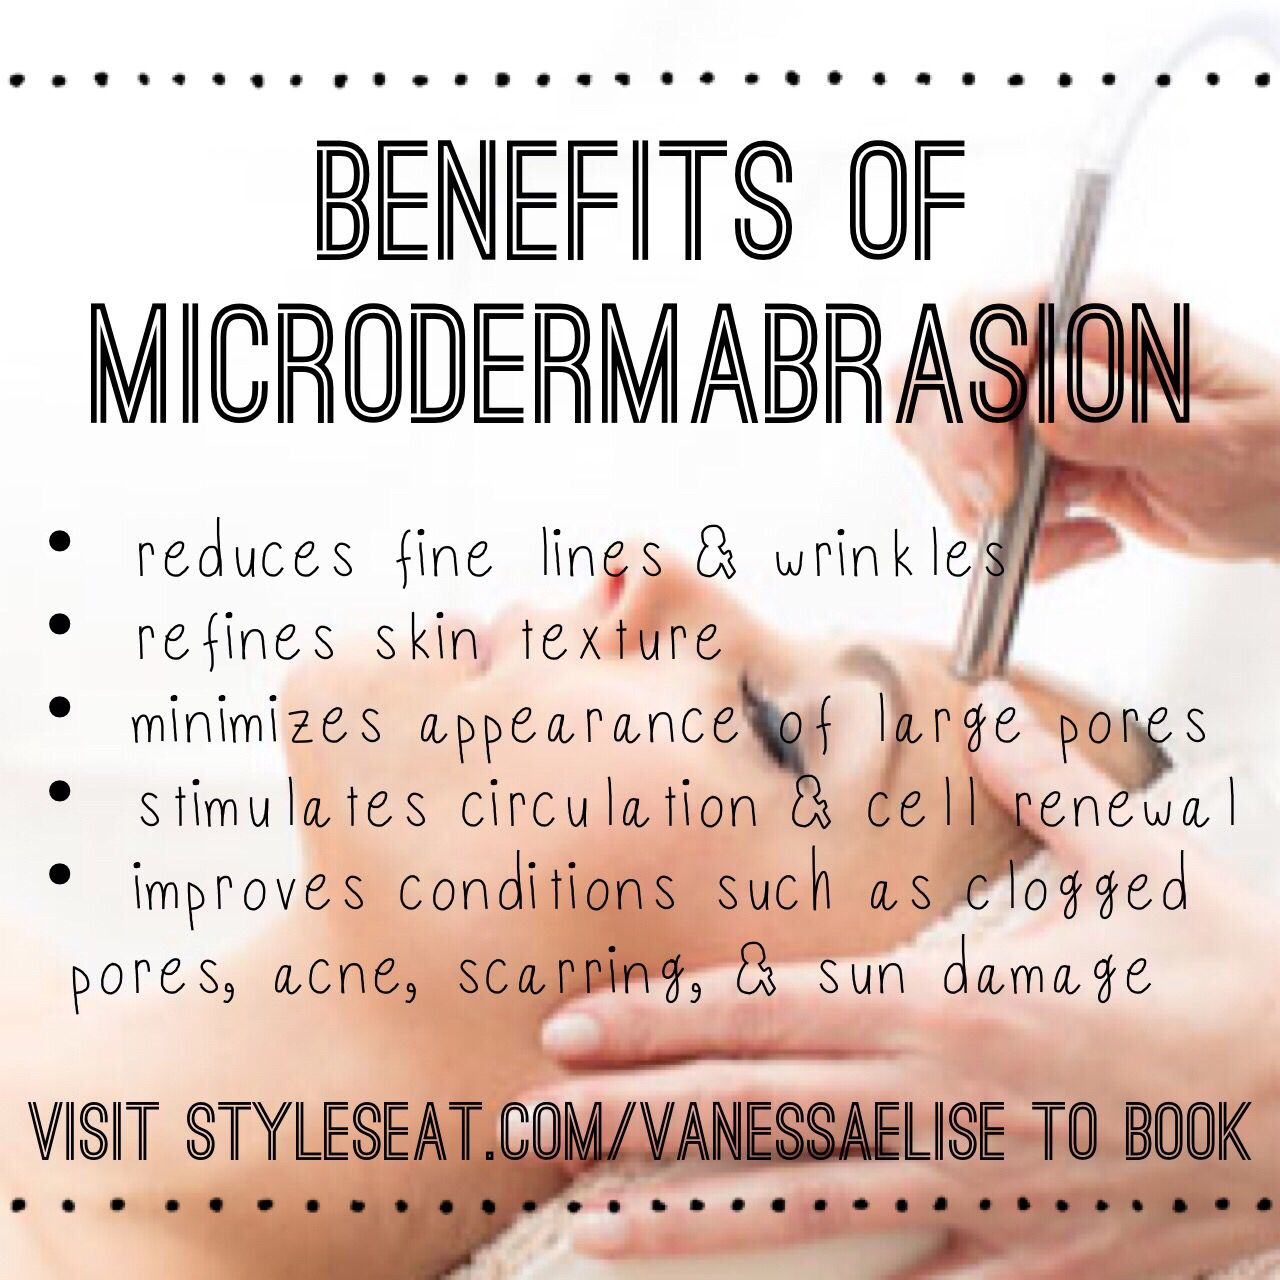 Benefits Of Microdermabrasion Skincare Esthetician Is